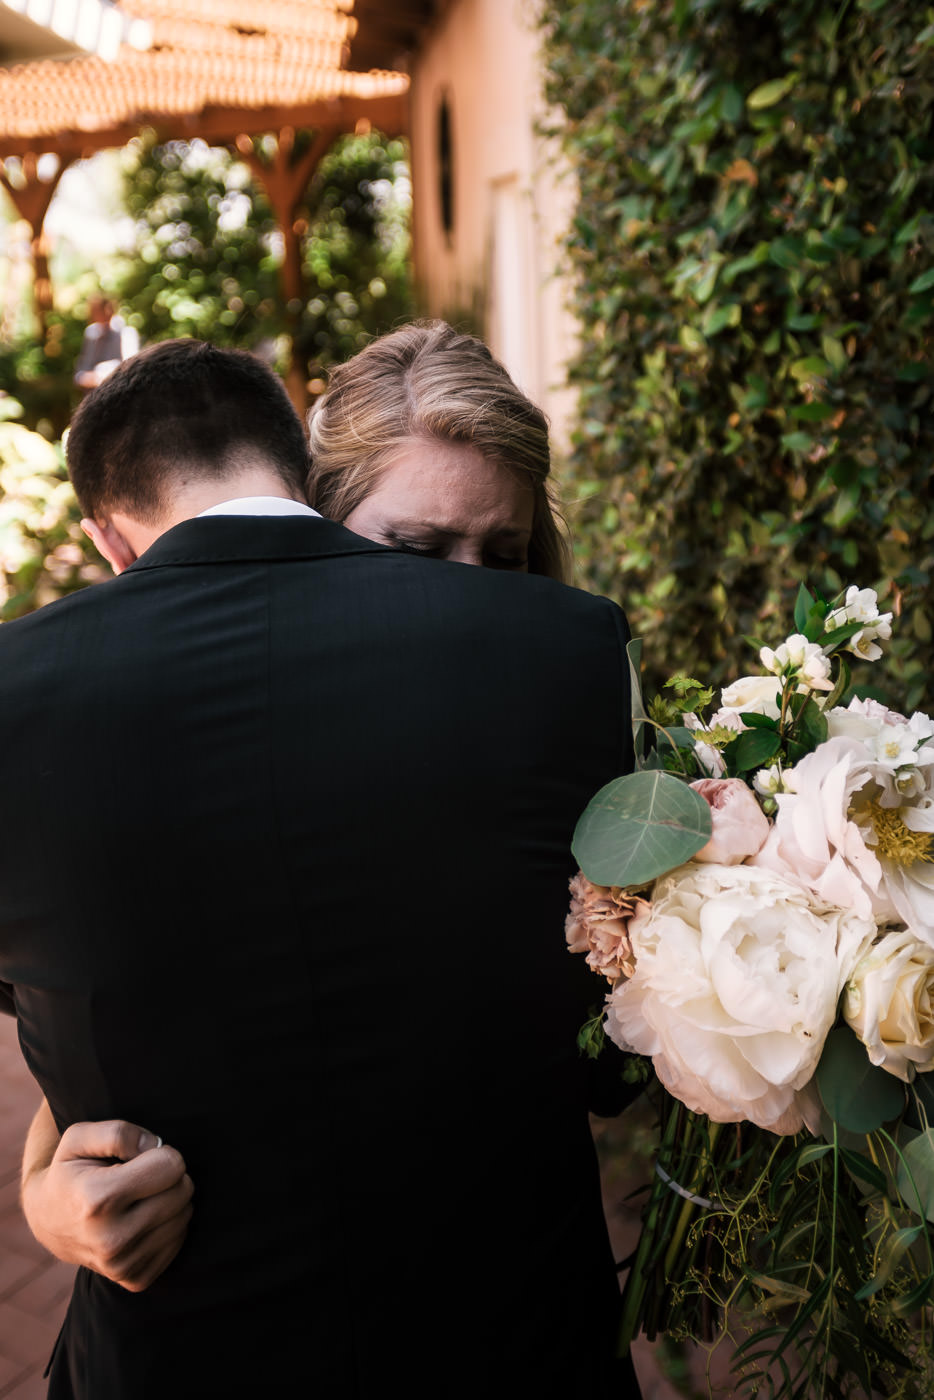 This lovely bride cried on her grooms shoulder as the emotions of seeing each ohter for the first time was too overwhelming